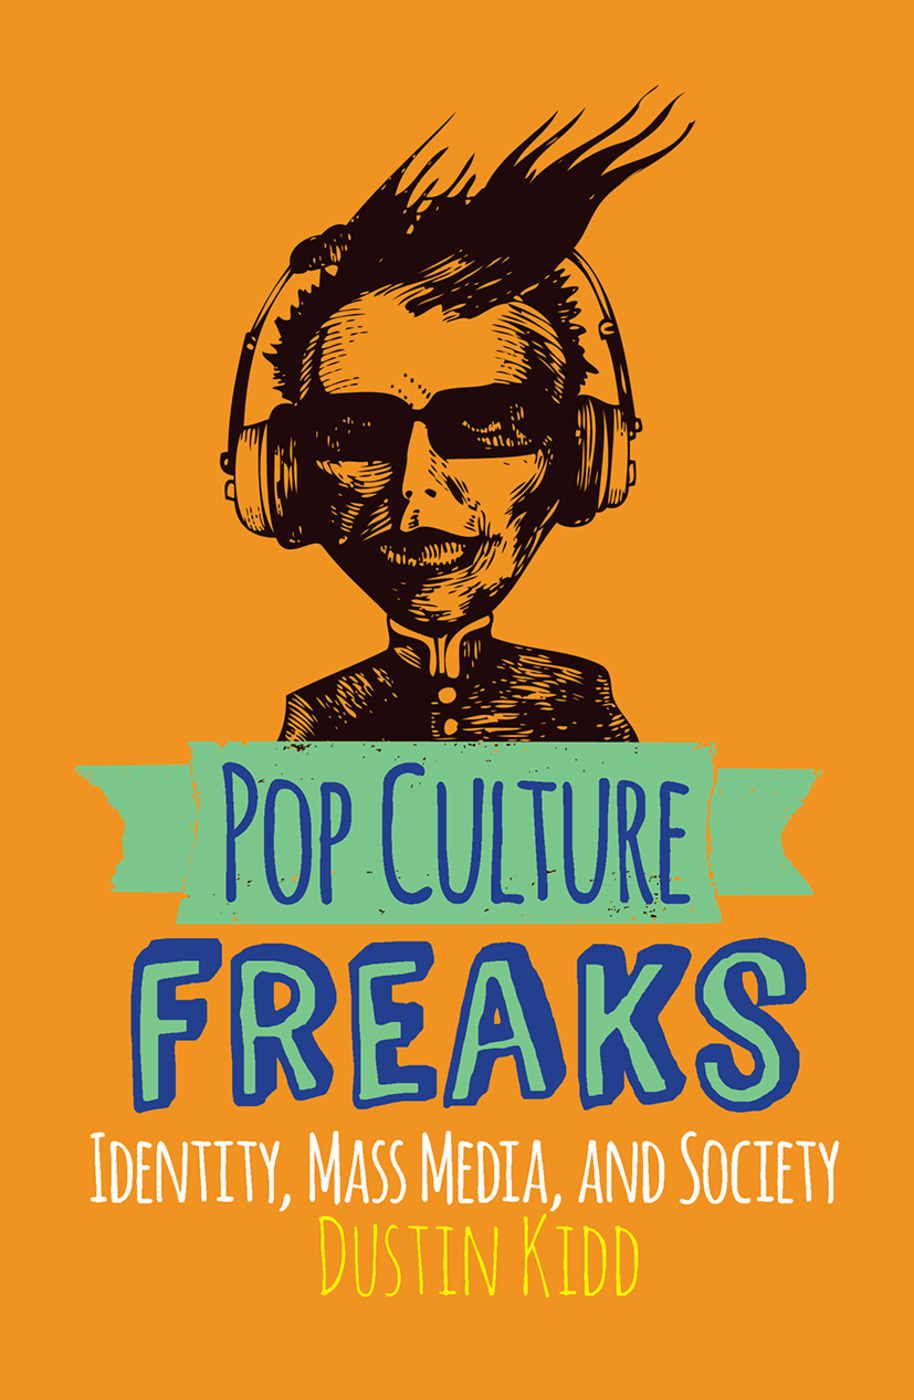 Pop Culture Freaks: Identity, Mass Media, and Society book cover